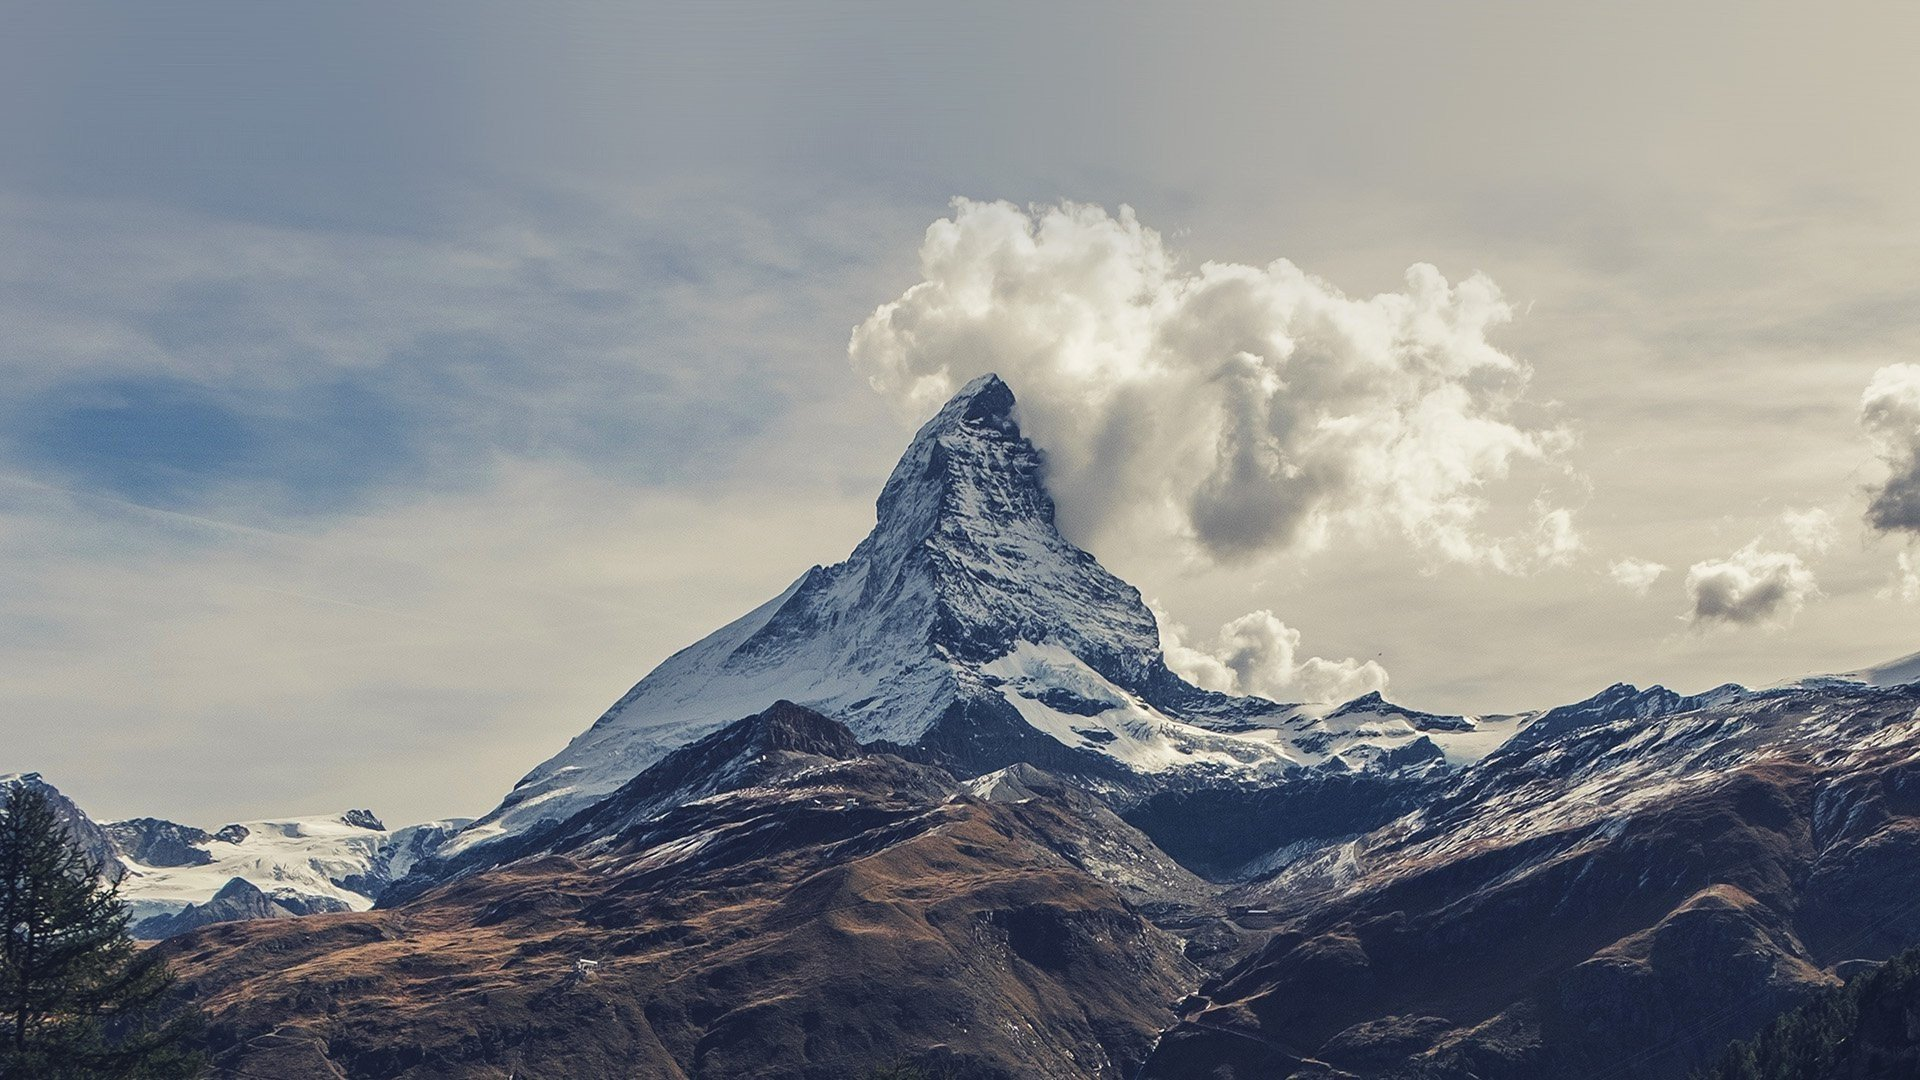 photo Mountain With Clouds   Clouds Day Daytime 1920x1080